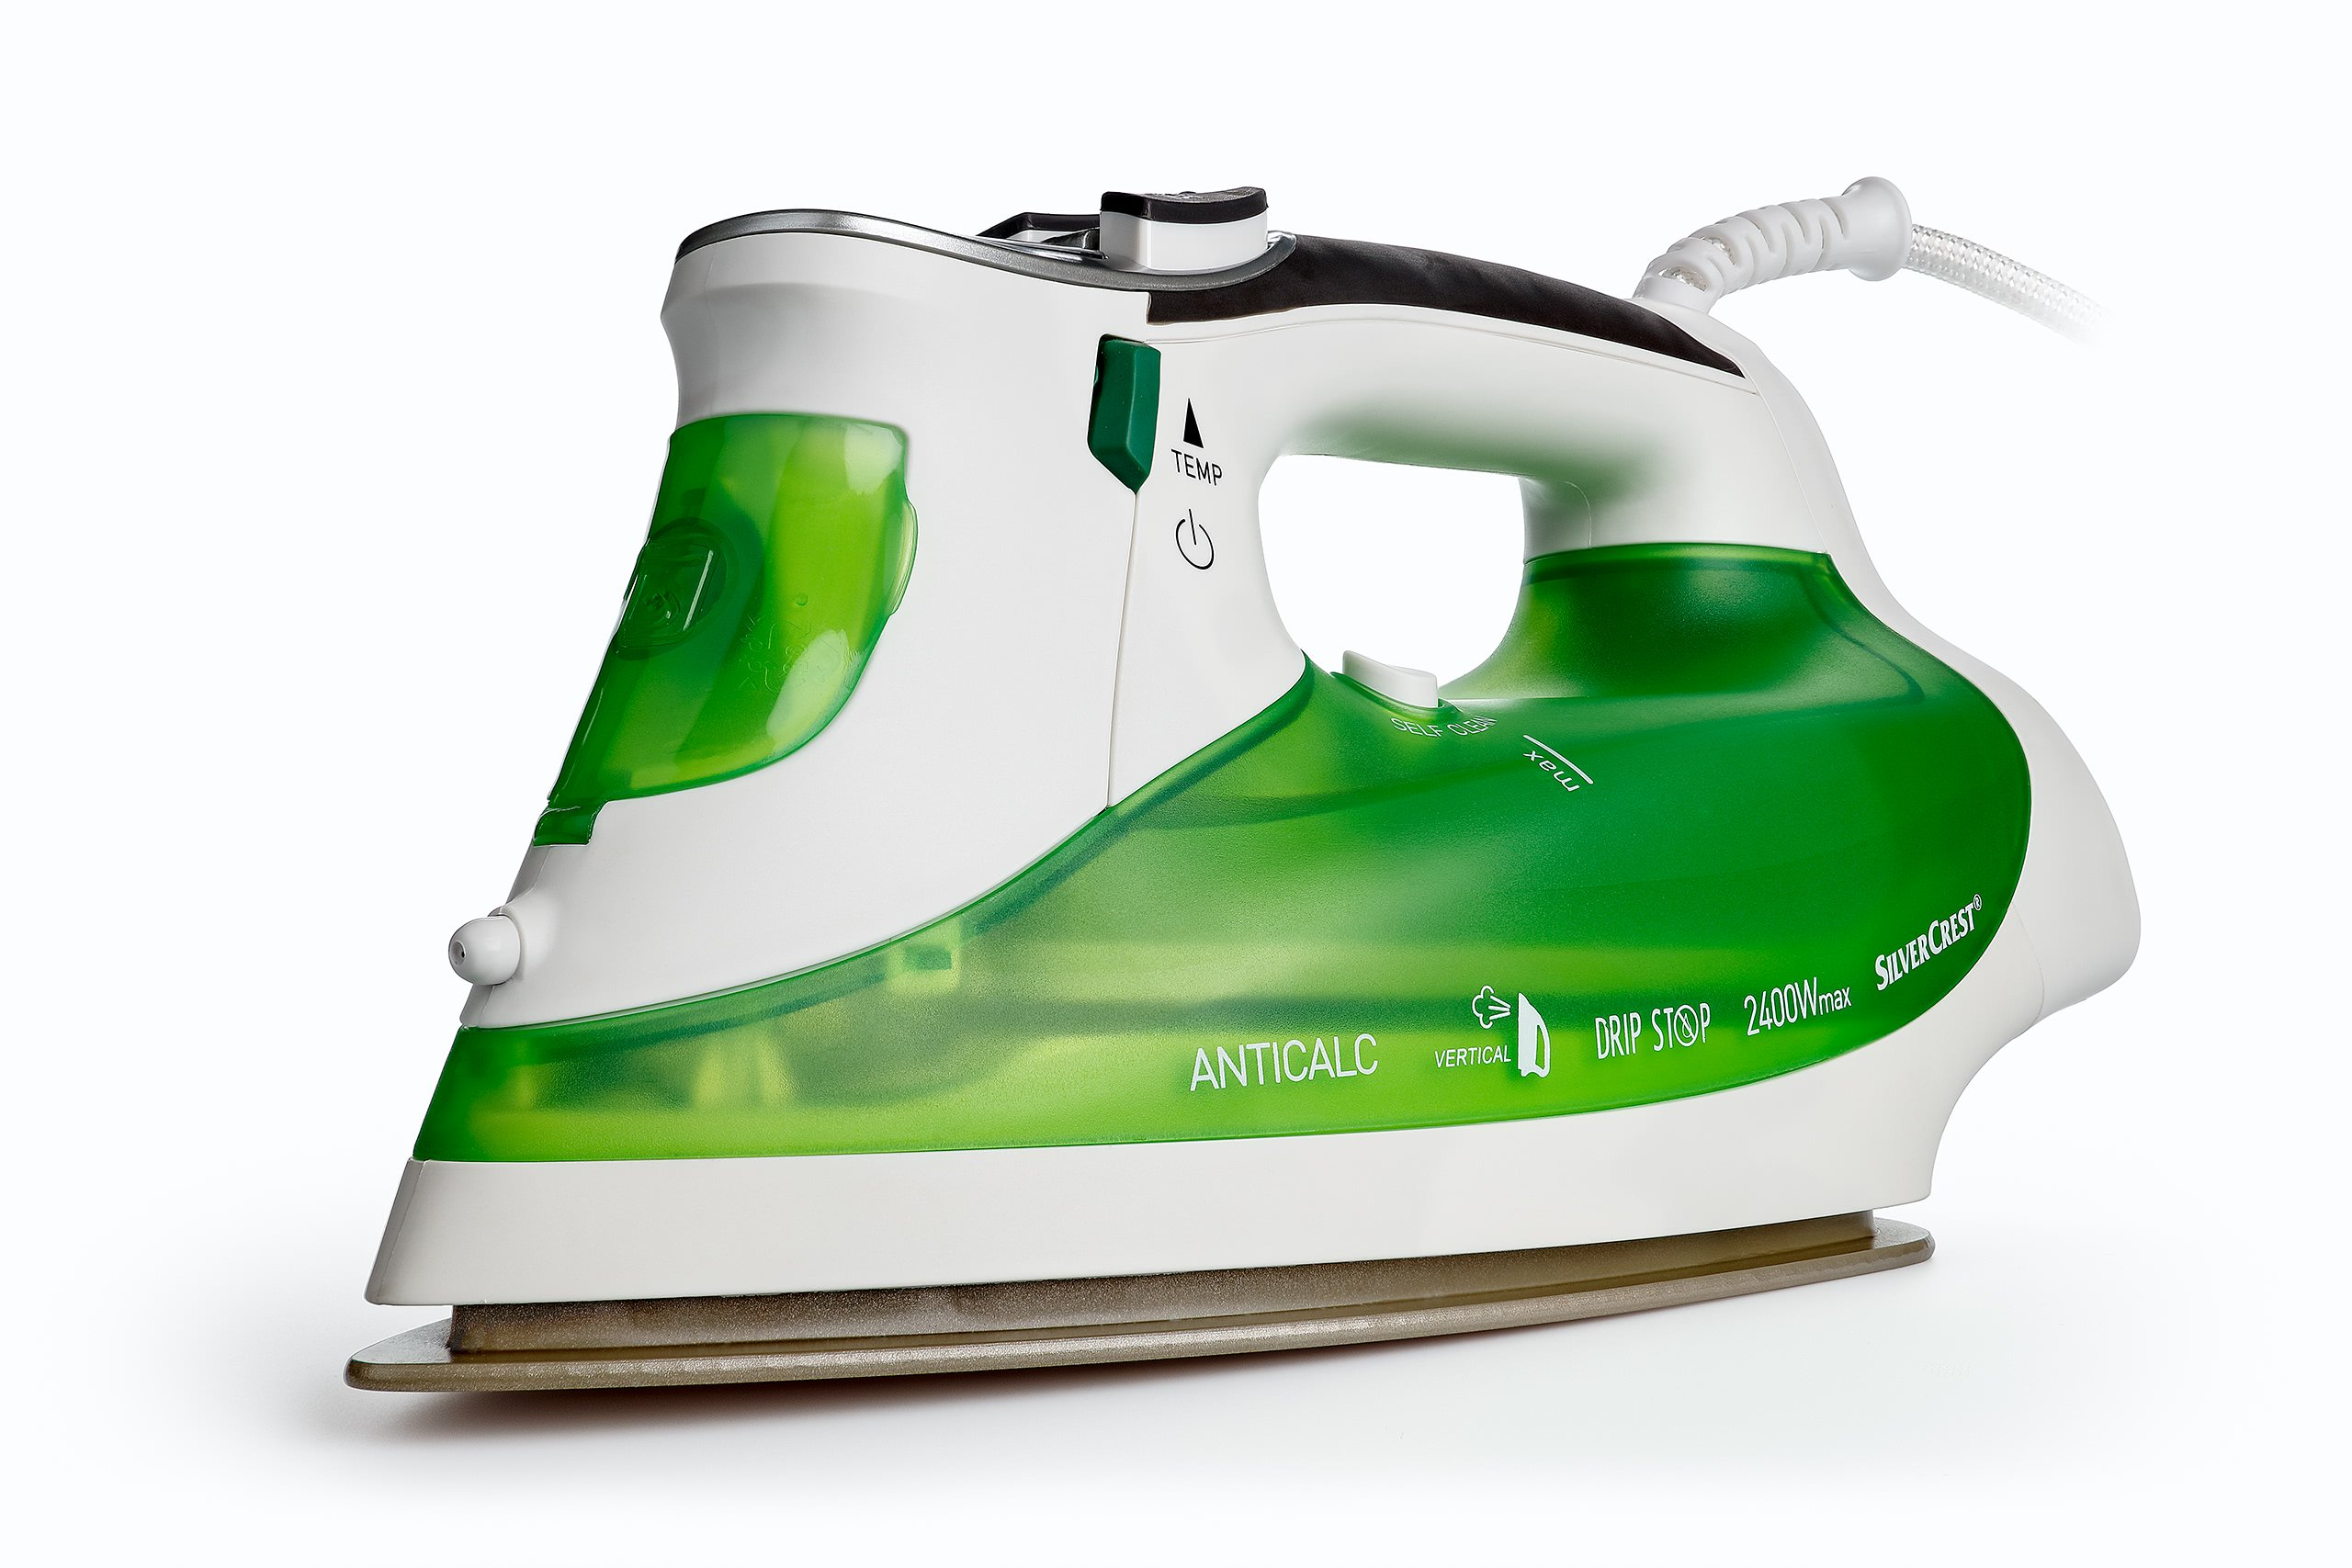 steam iron on white background